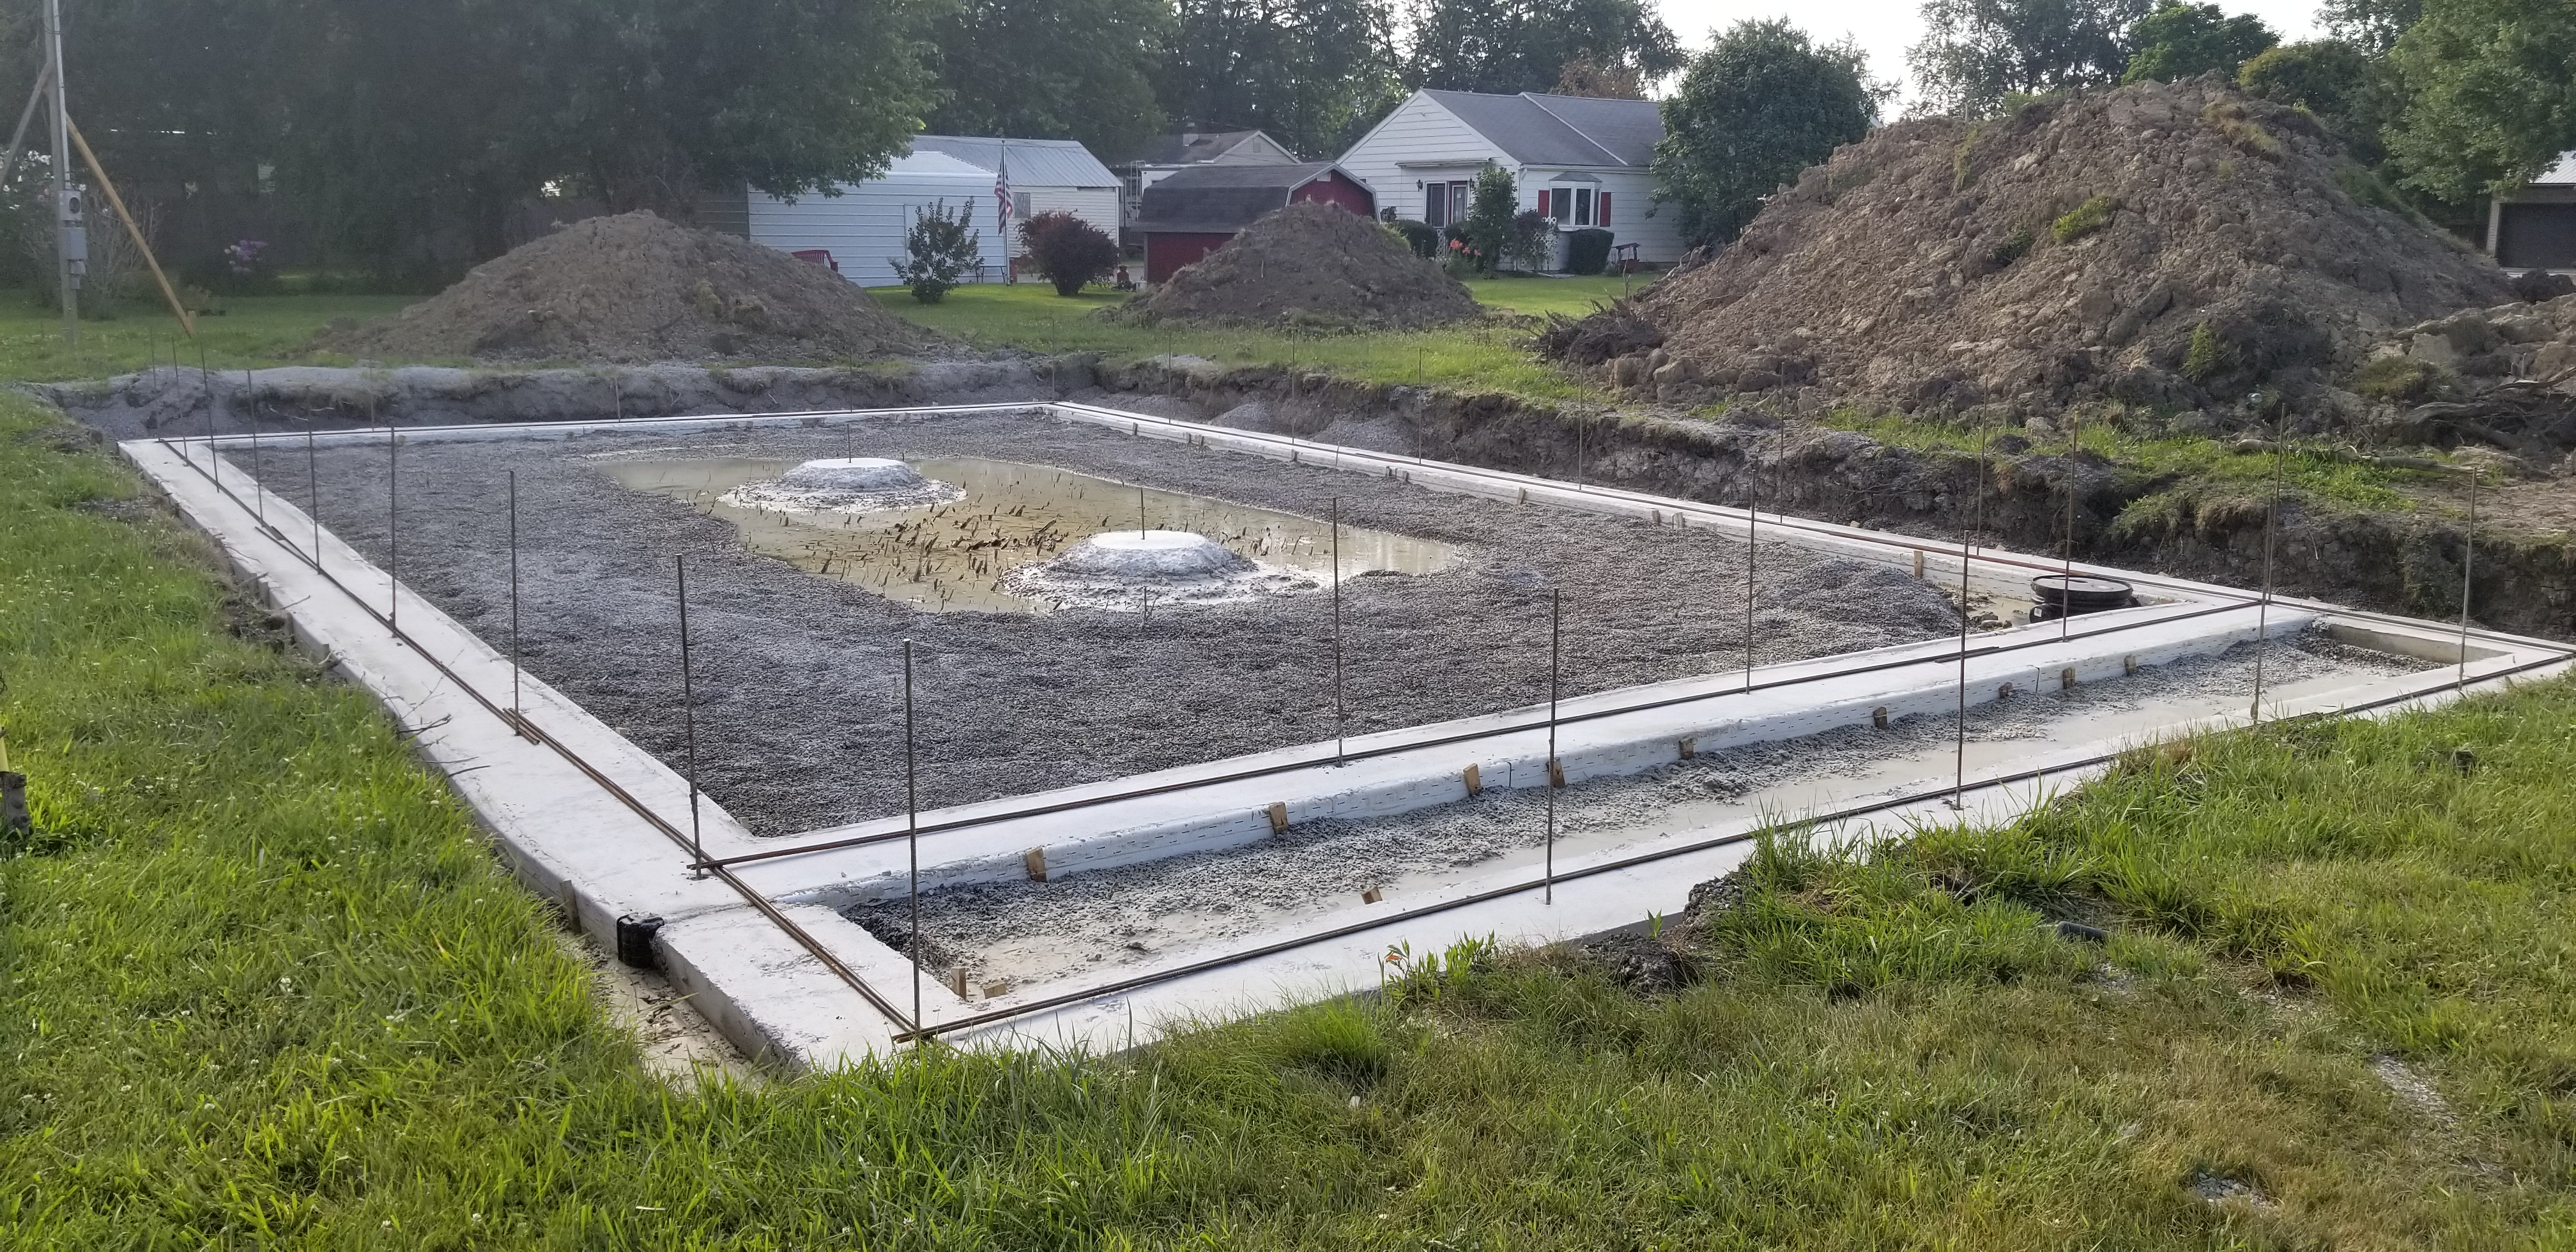 2019 Project at 910 Zenobia Street, Wauseon